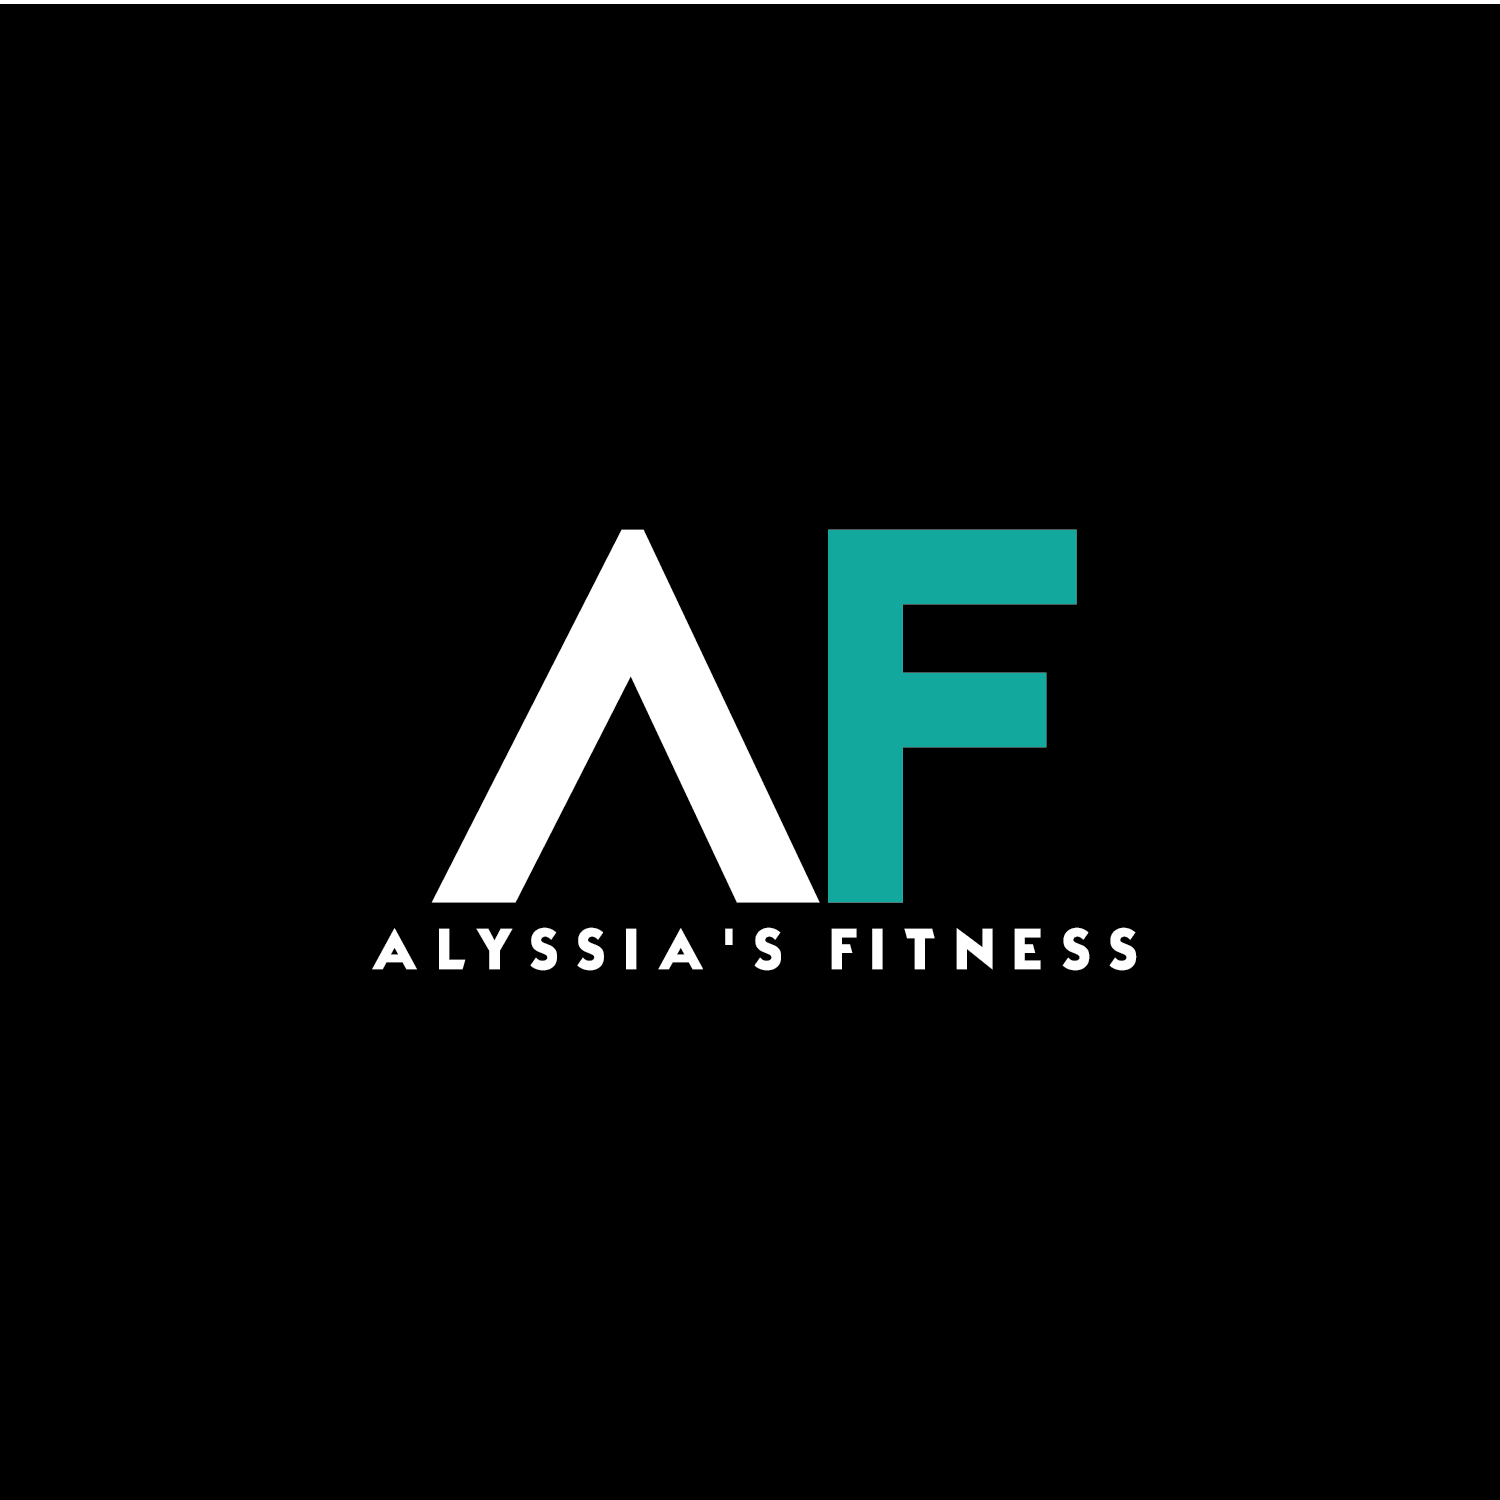 Licensed Royal Parks Fitness Operators Hyde Park The Electric Circuits And Fields Nuffield Foundation Alyssias